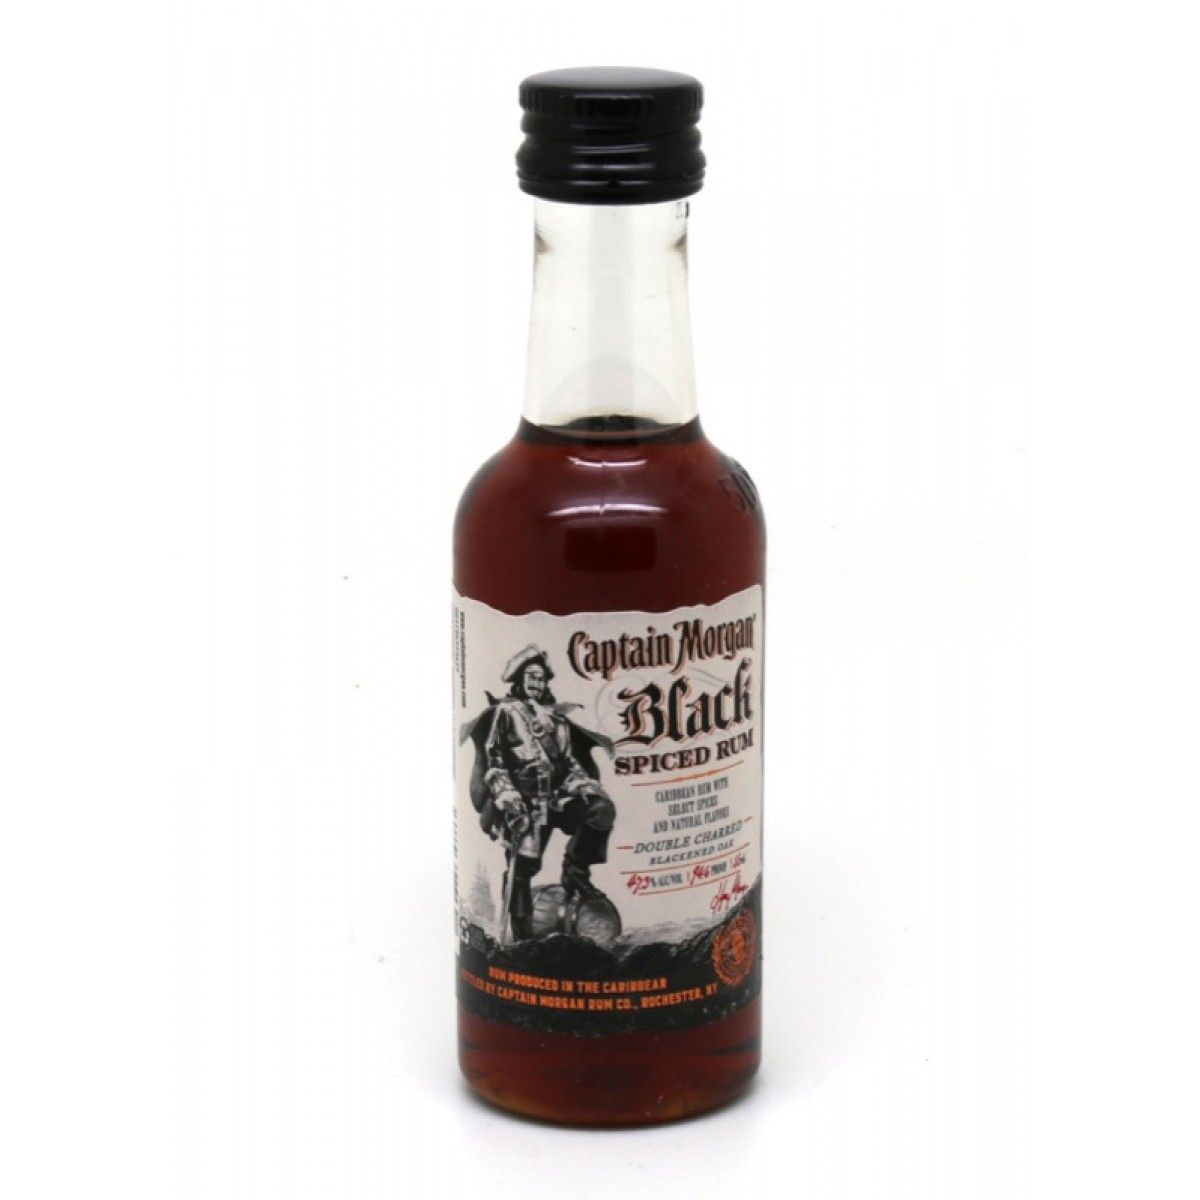 CAPTAIN BLACK CASK SPICED RUM [email protected] - 50 ml | Pinterest ...